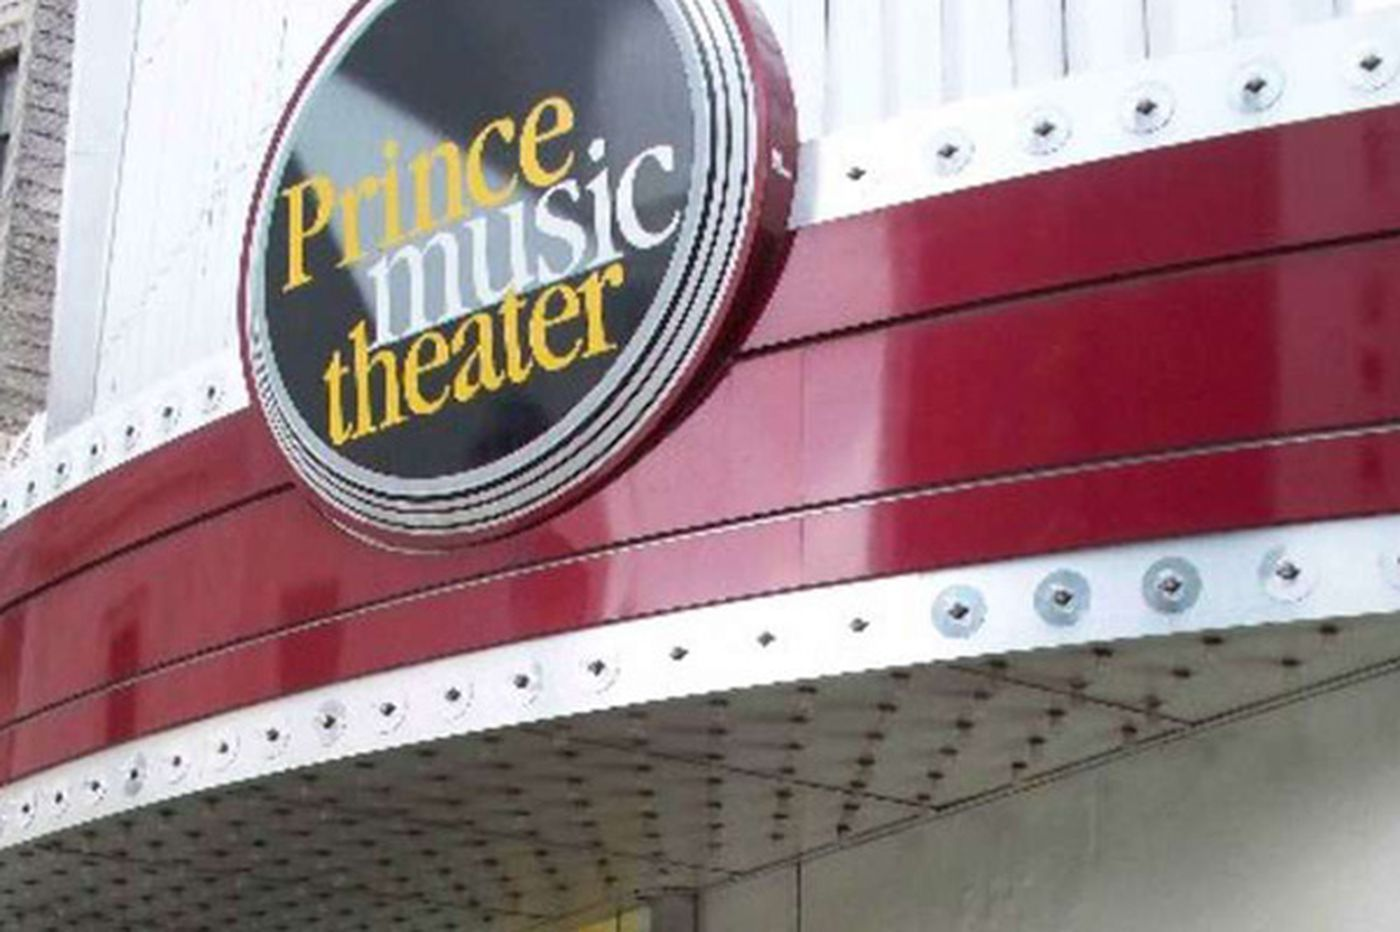 Prince Music Theater organization calls it quits